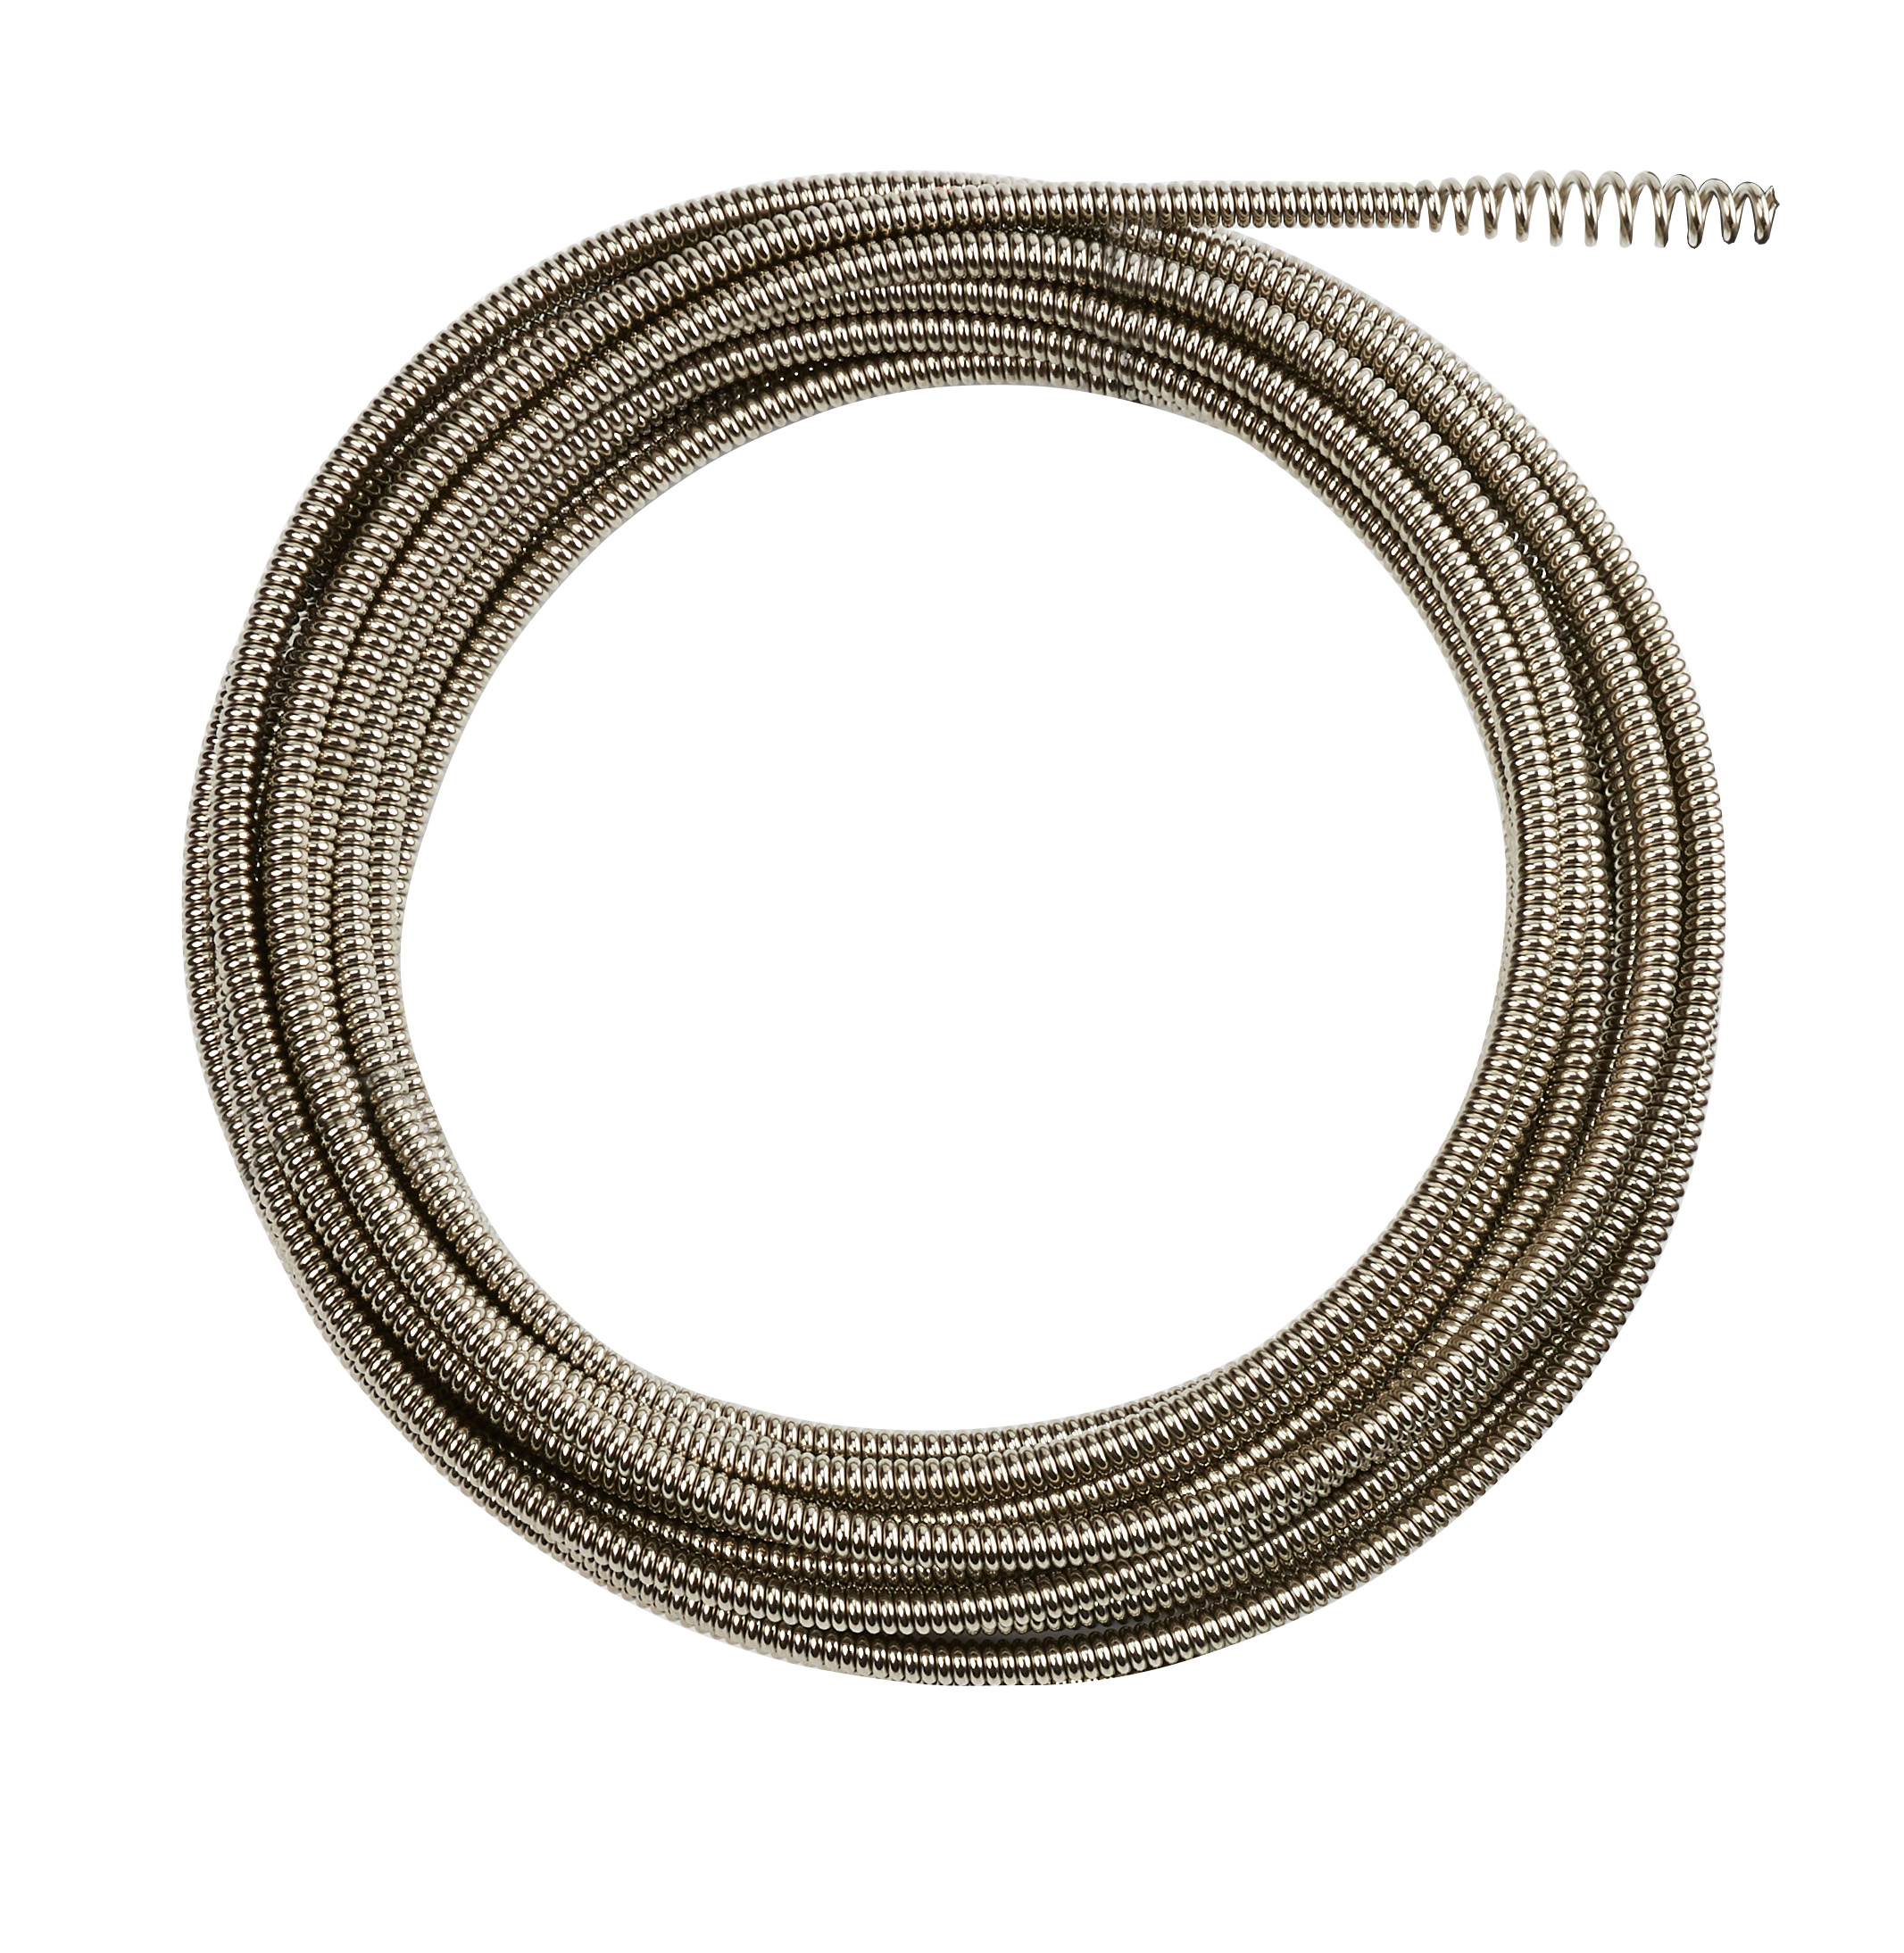 Milwaukee® 48-53-2673 Inner Core Bulb Head Drain Cleaning Cable, 5/16 in, Steel, For Use With Drain Cleaning Machines, 1-1/4 to 2-1/2 in Drain Line